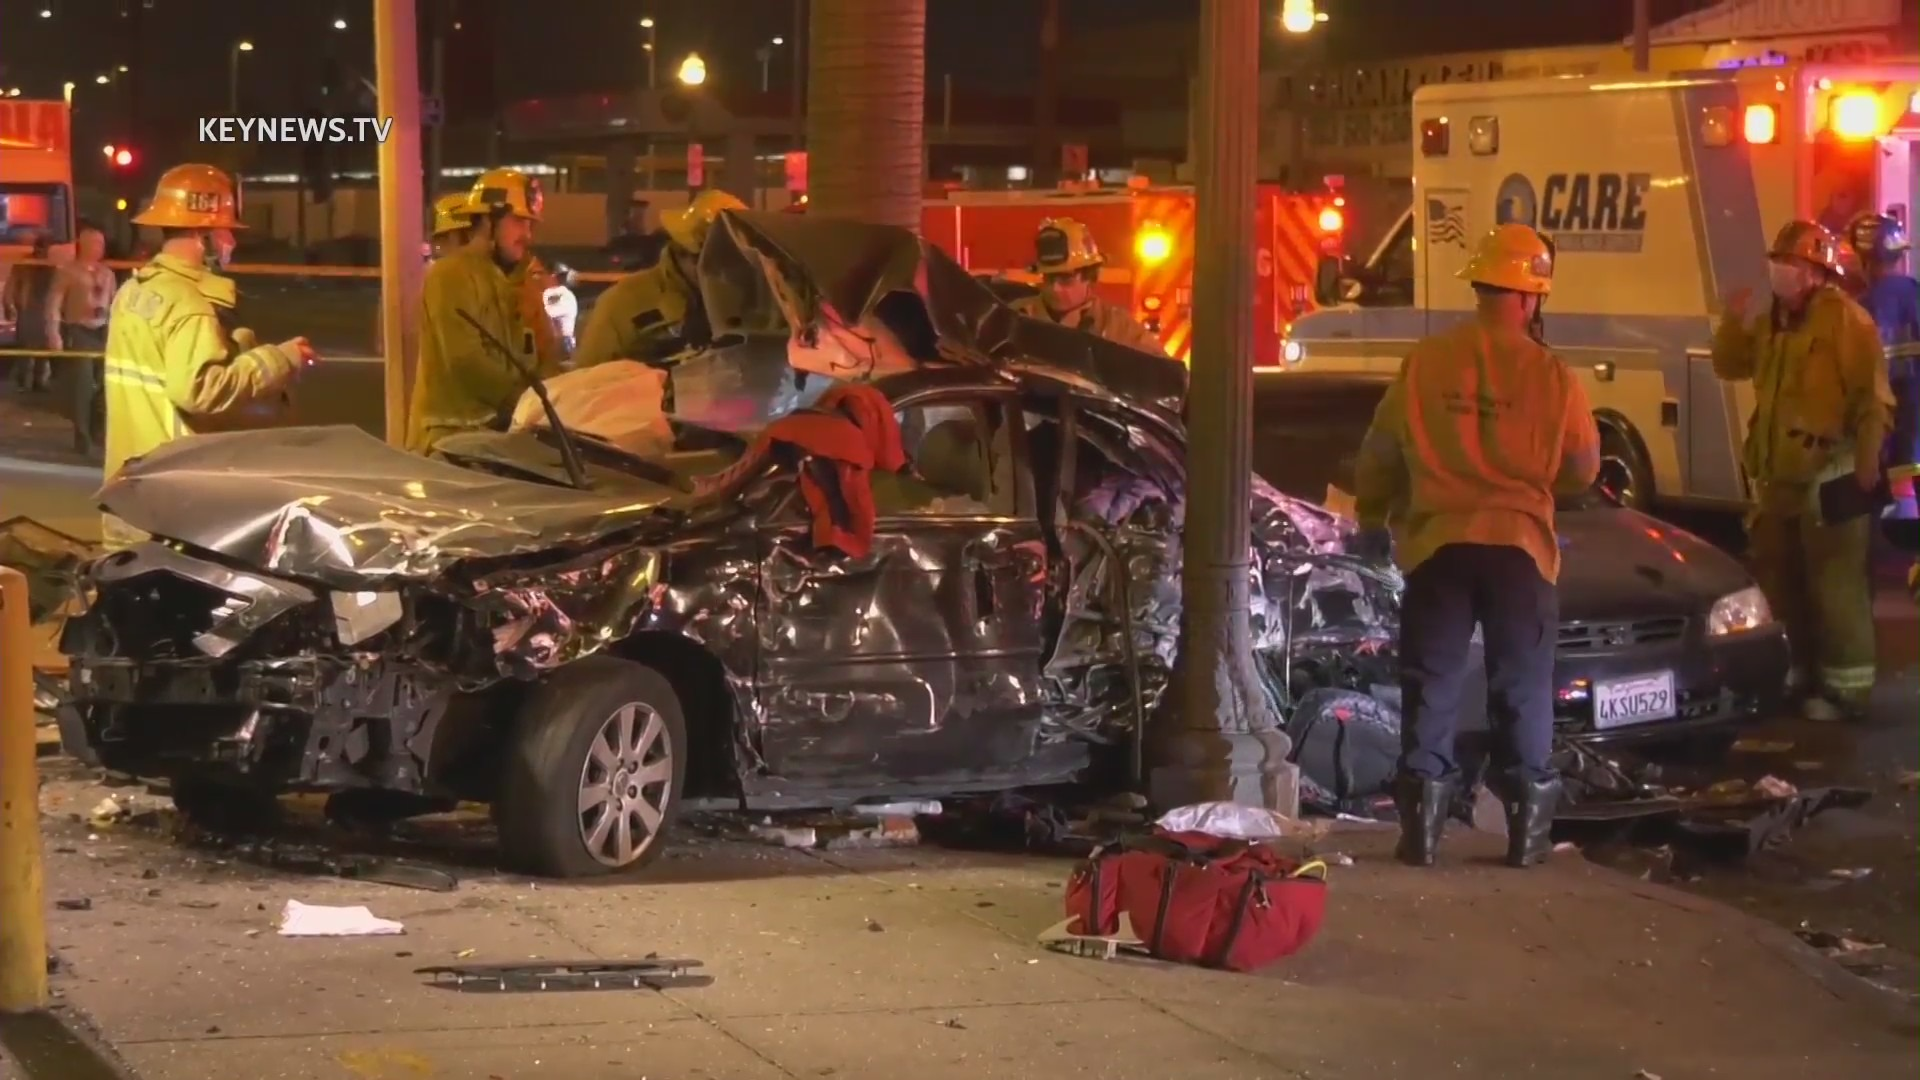 Emergency personnel respond to a fatal crash in South Los Angeles on April 11, 2021. (KeyNews.TV)